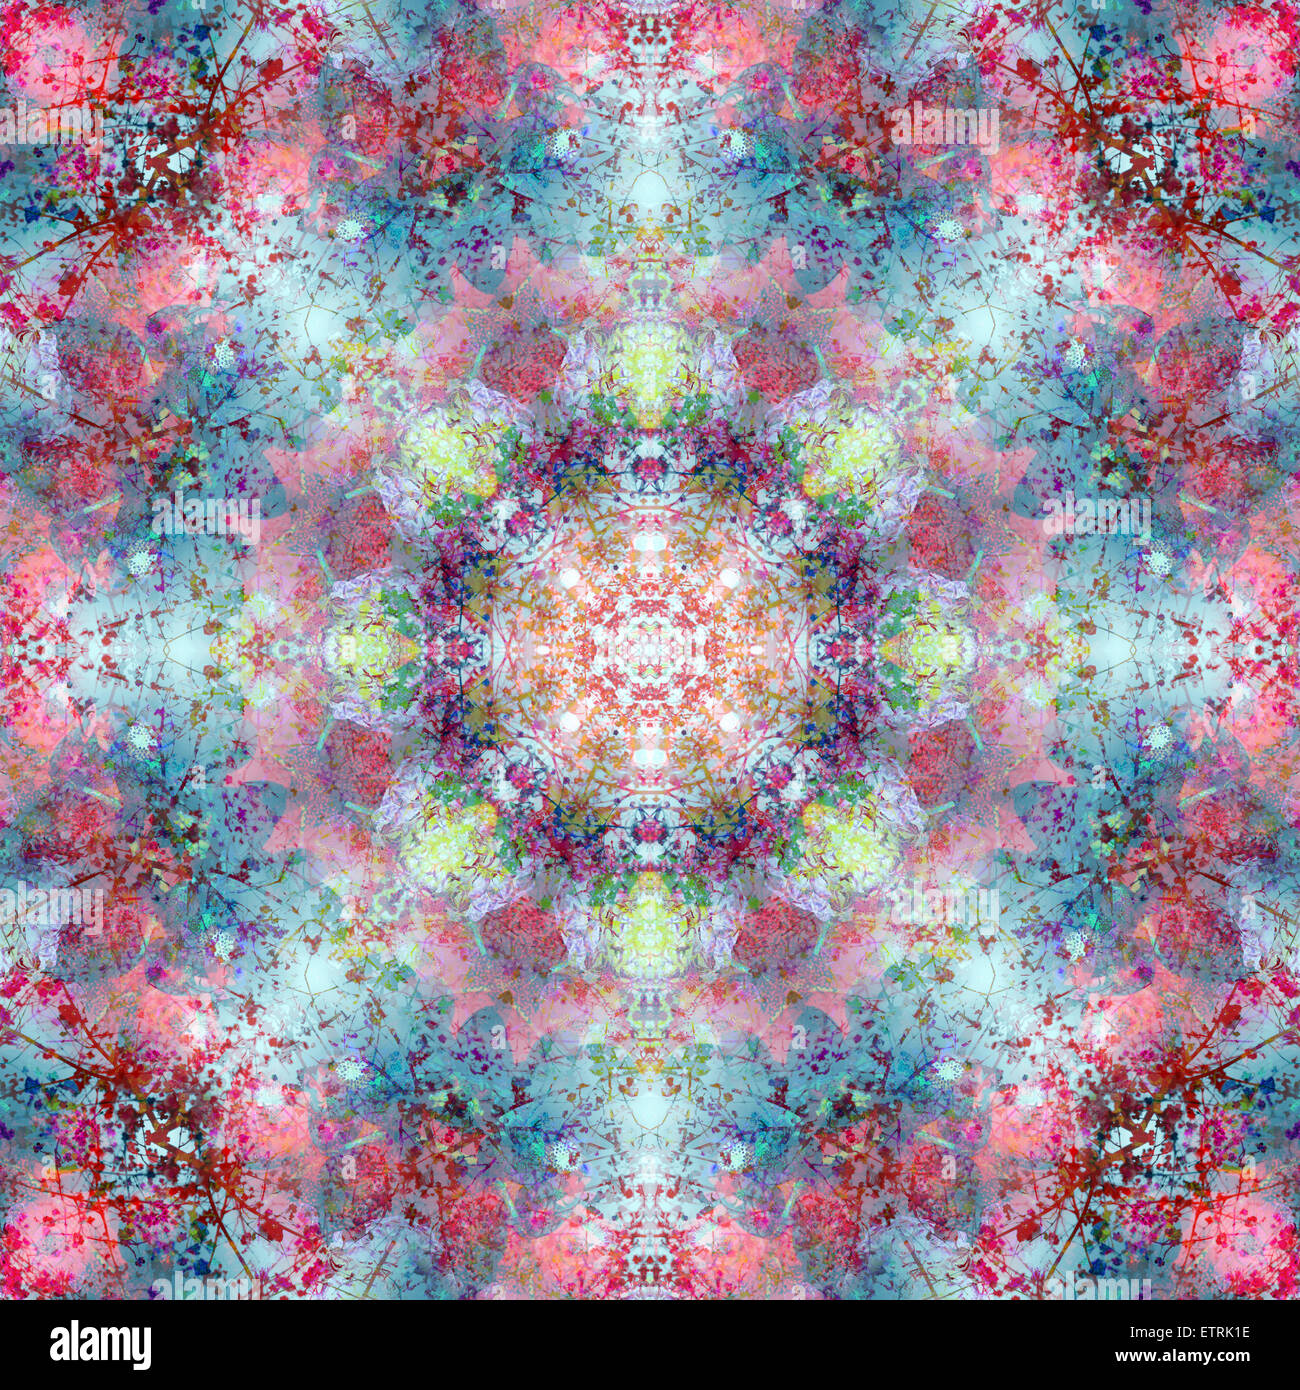 symmetric ornament from flower photographs Stock Photo